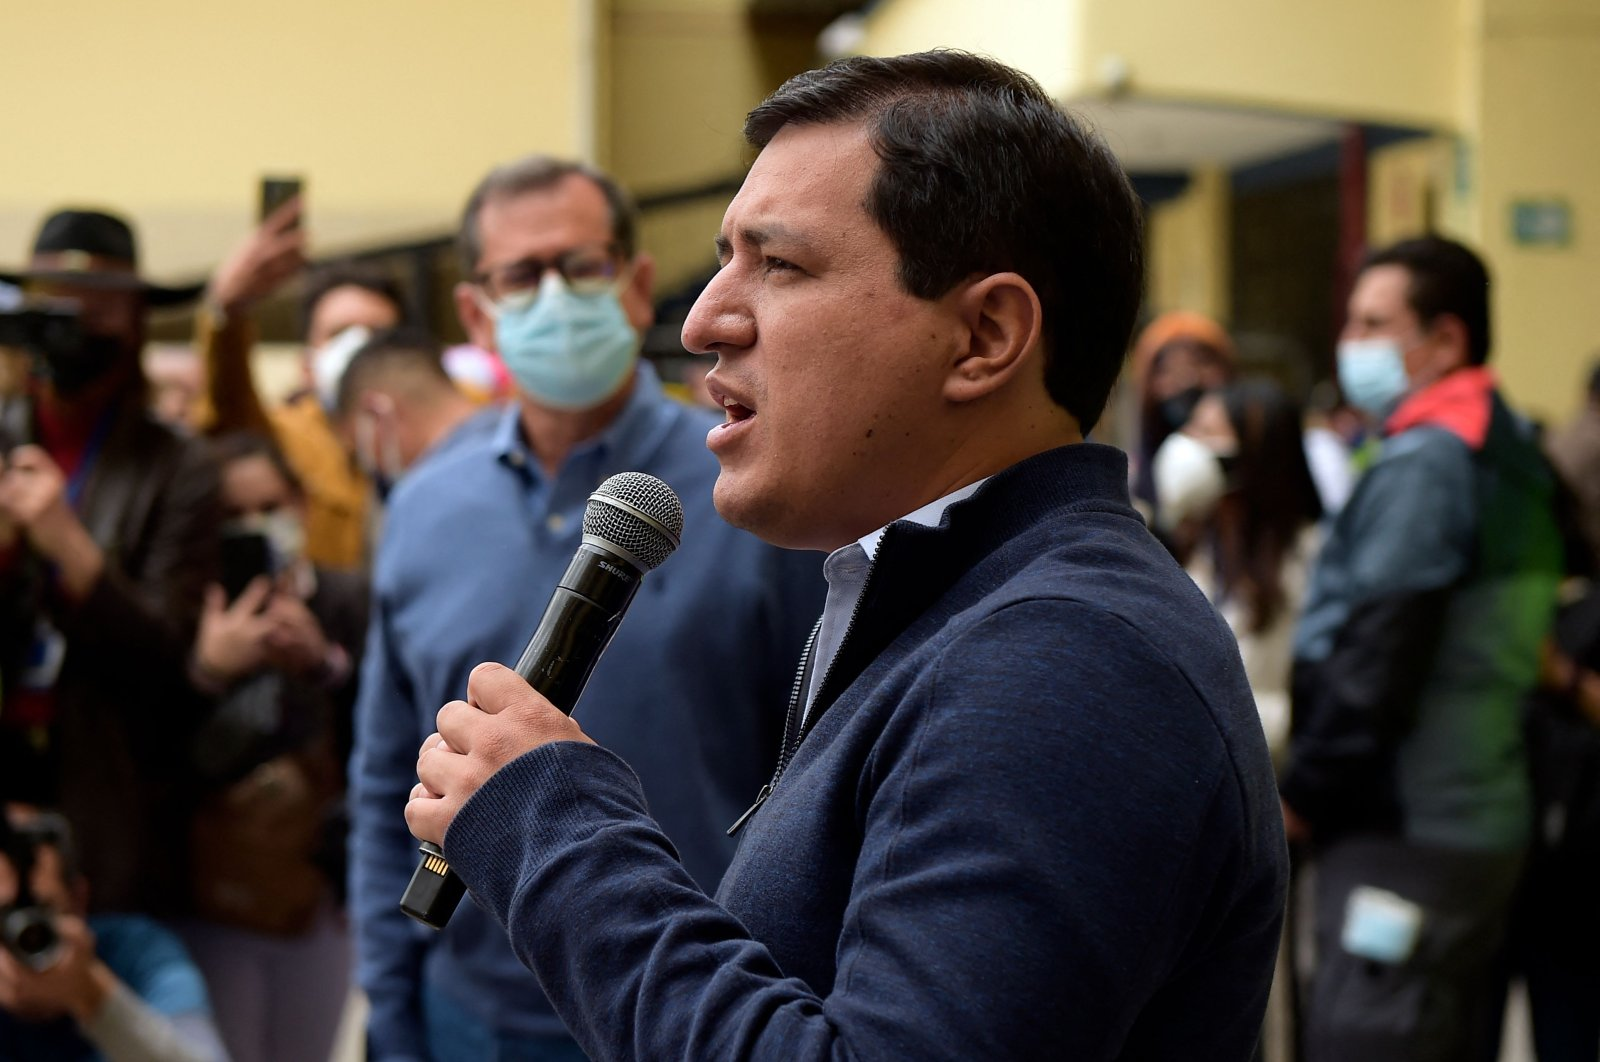 Ecuadorian presidential candidate Andres Arauz speaks at a polling station during the presidential runoff election in the capital Quito, Ecuador, April 11, 2021. (AFP Photo)